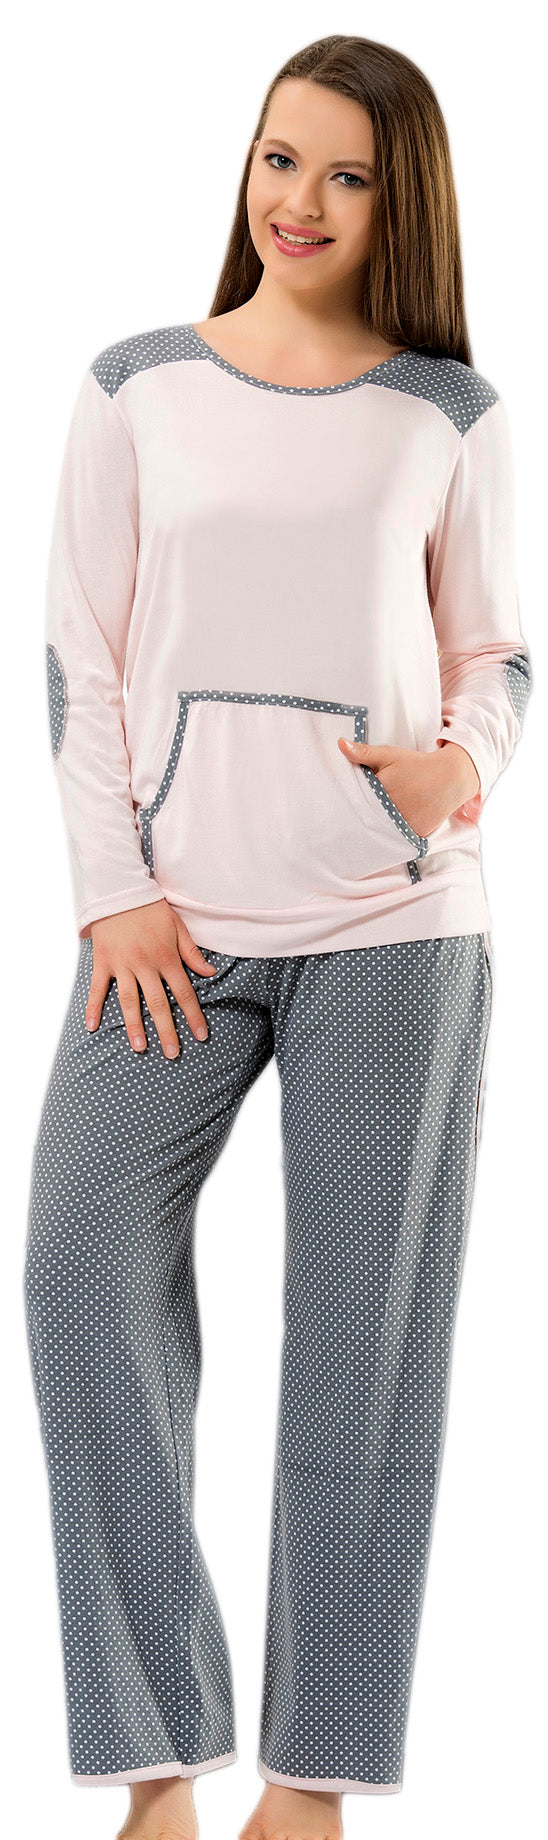 Long Sleeve Round Neck Top & Polka Dot Long Pants Pyjama Set